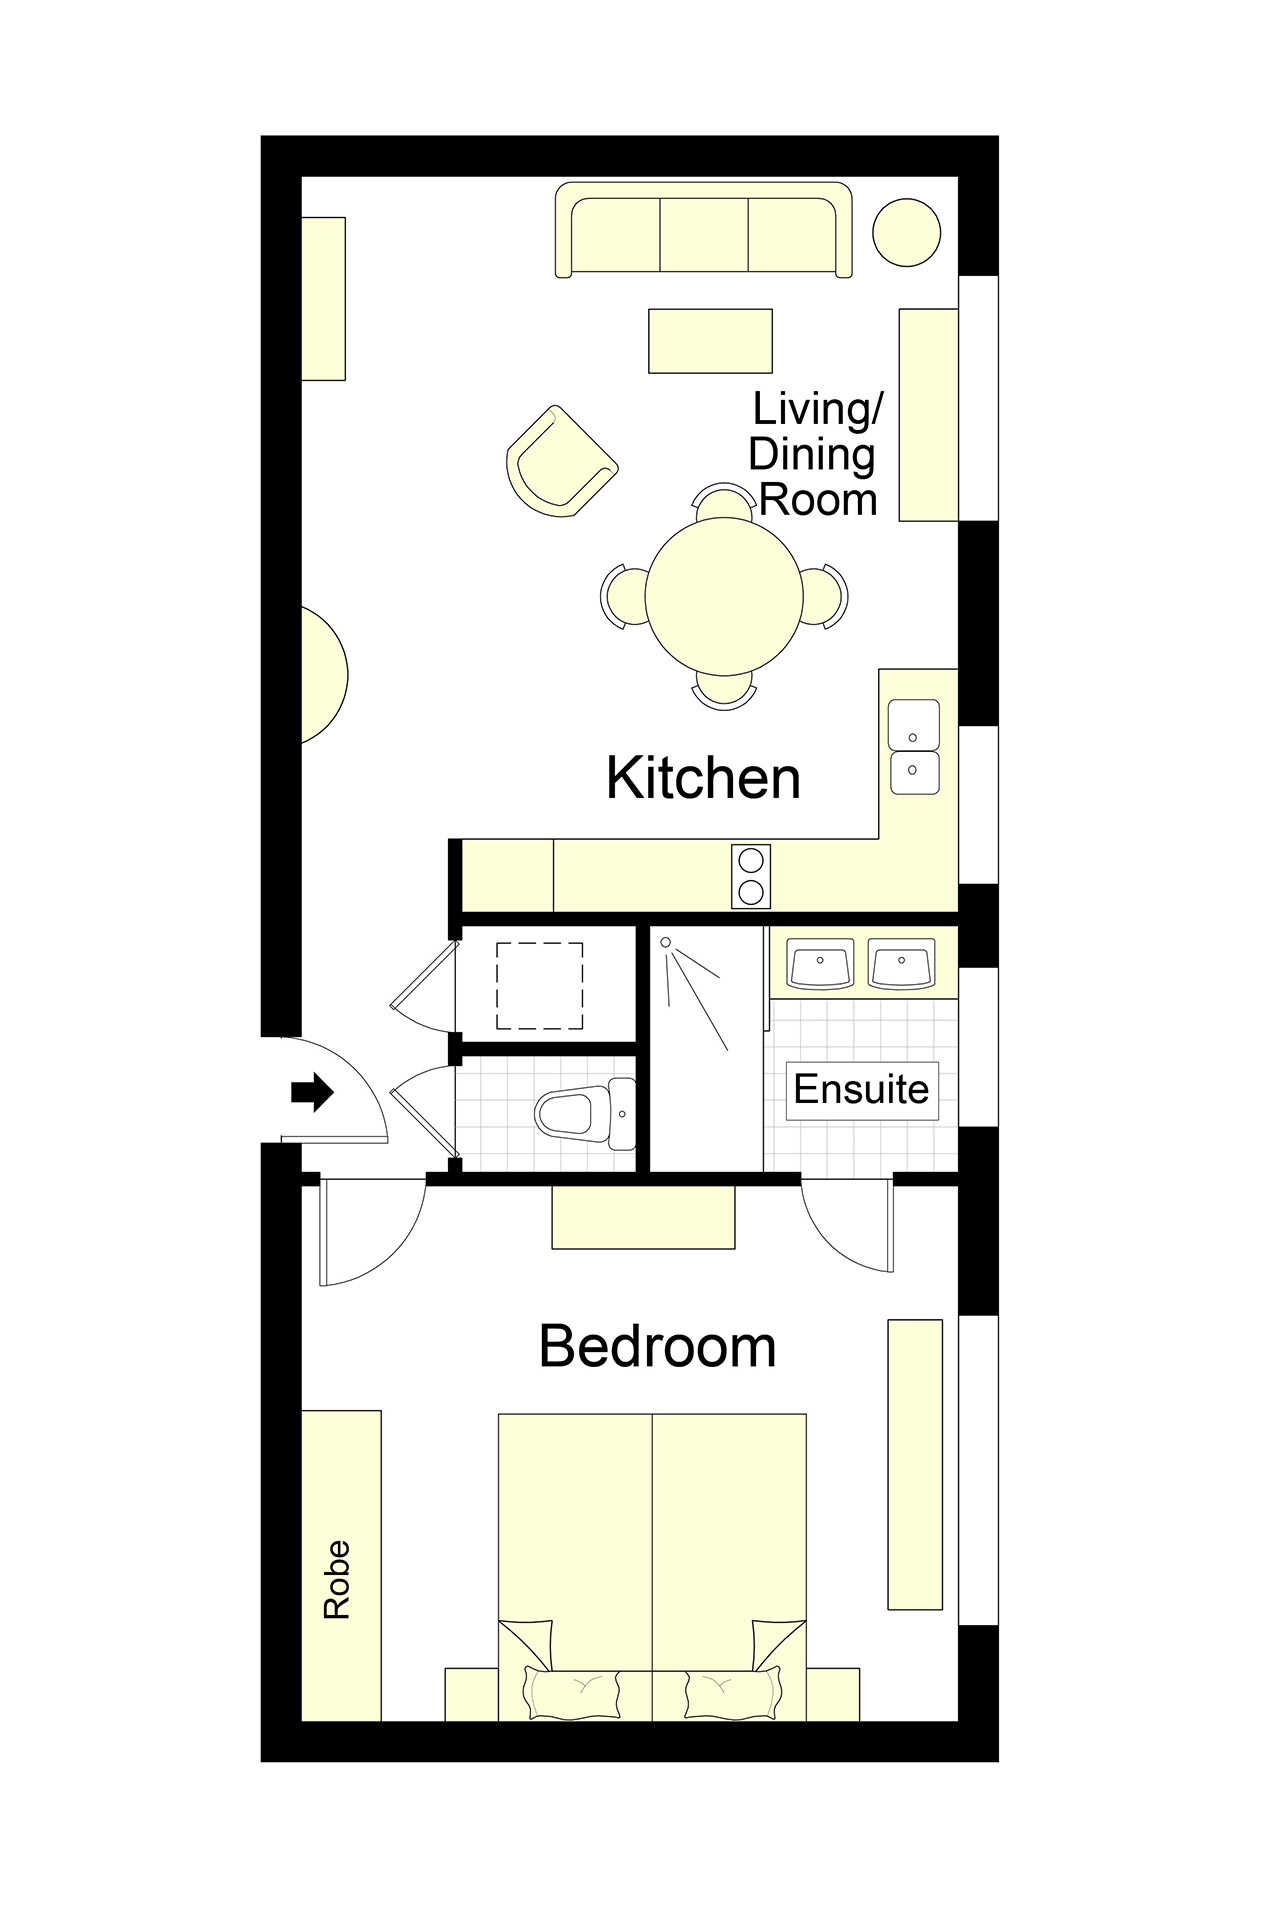 Collioure Furnished Paris Apartment Floorplan